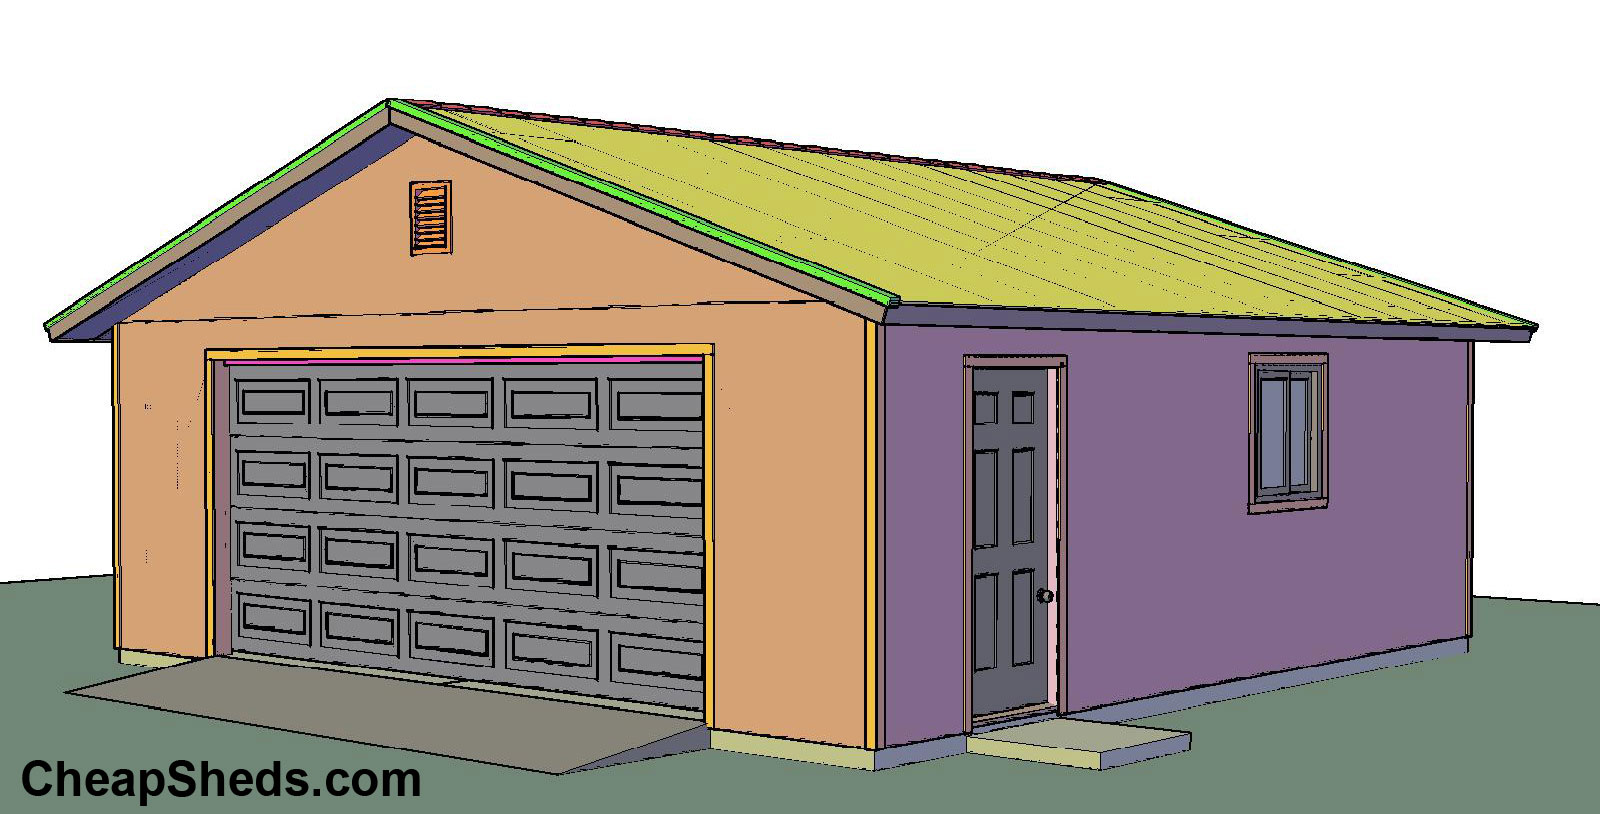 How to build and frame a 1 2 3 4 car garage plans for 2 car garage plans